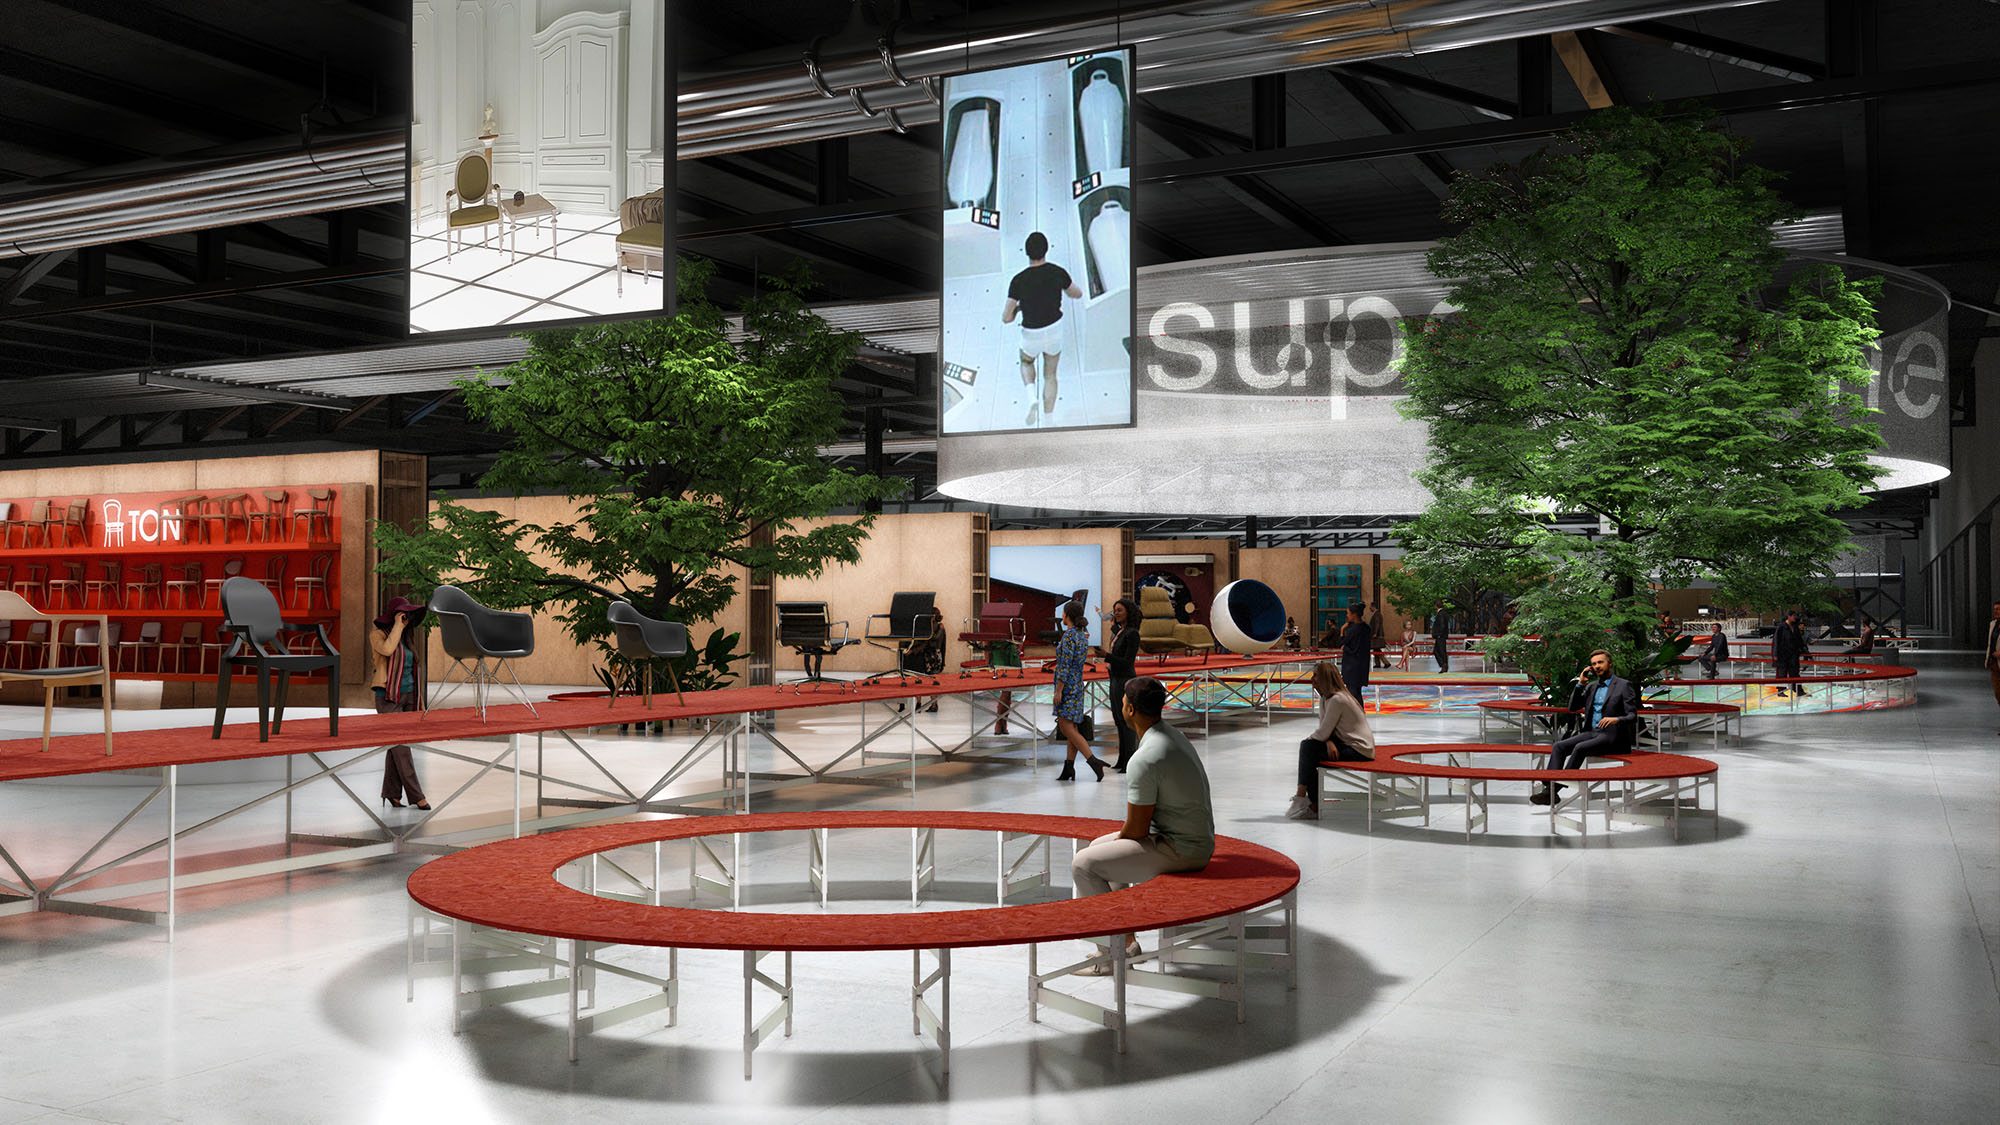 Supersalone opens its doors at Fiera Milano